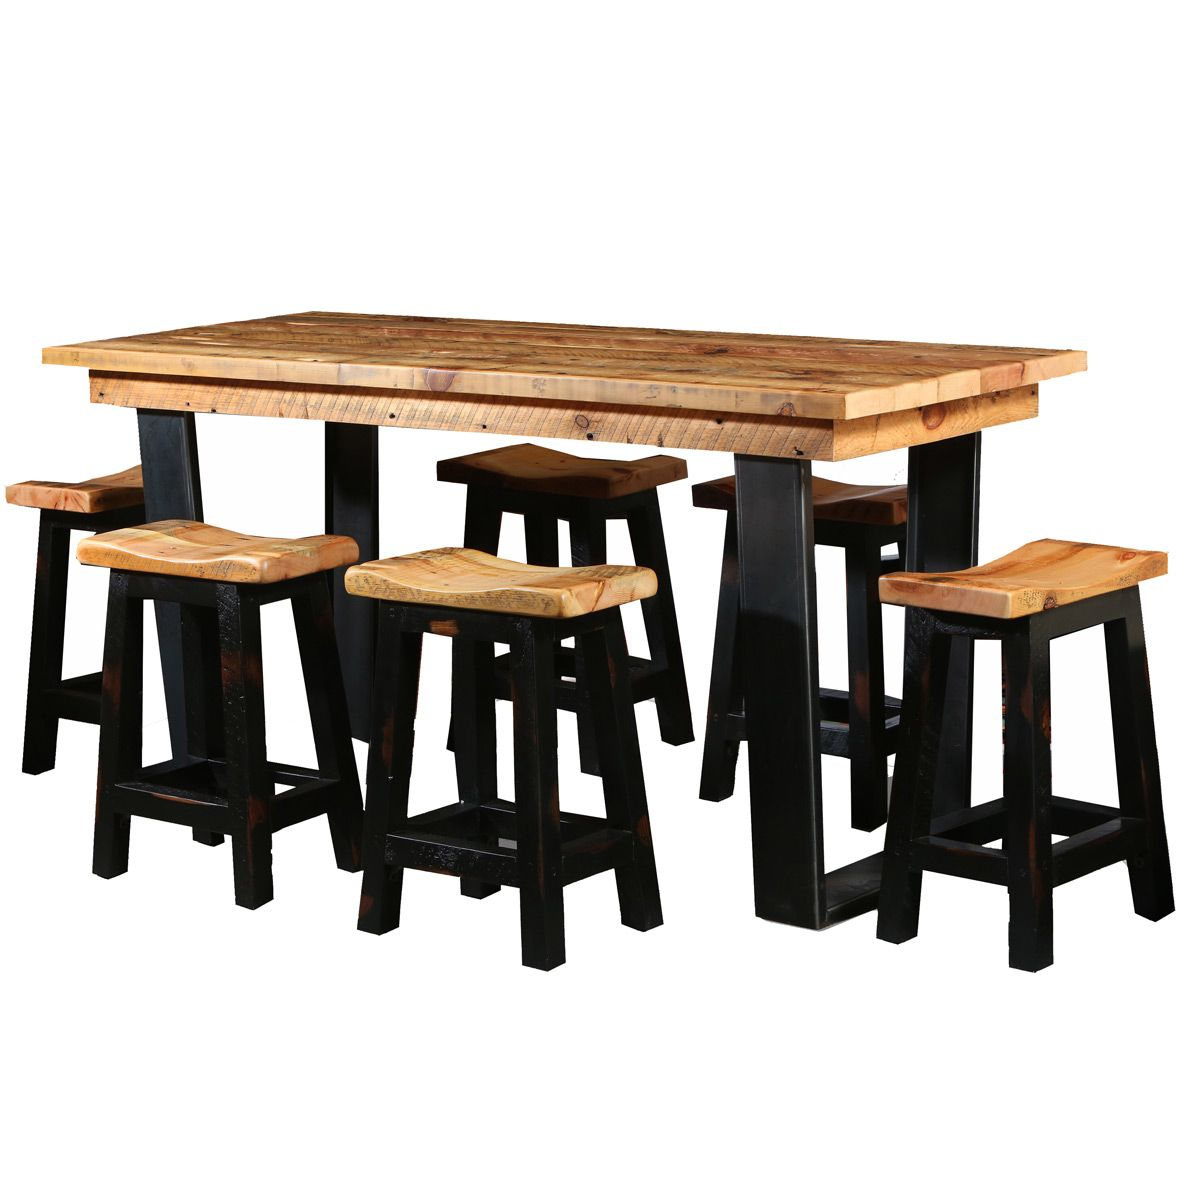 Granary Industrial Counter Table - 6 Foot